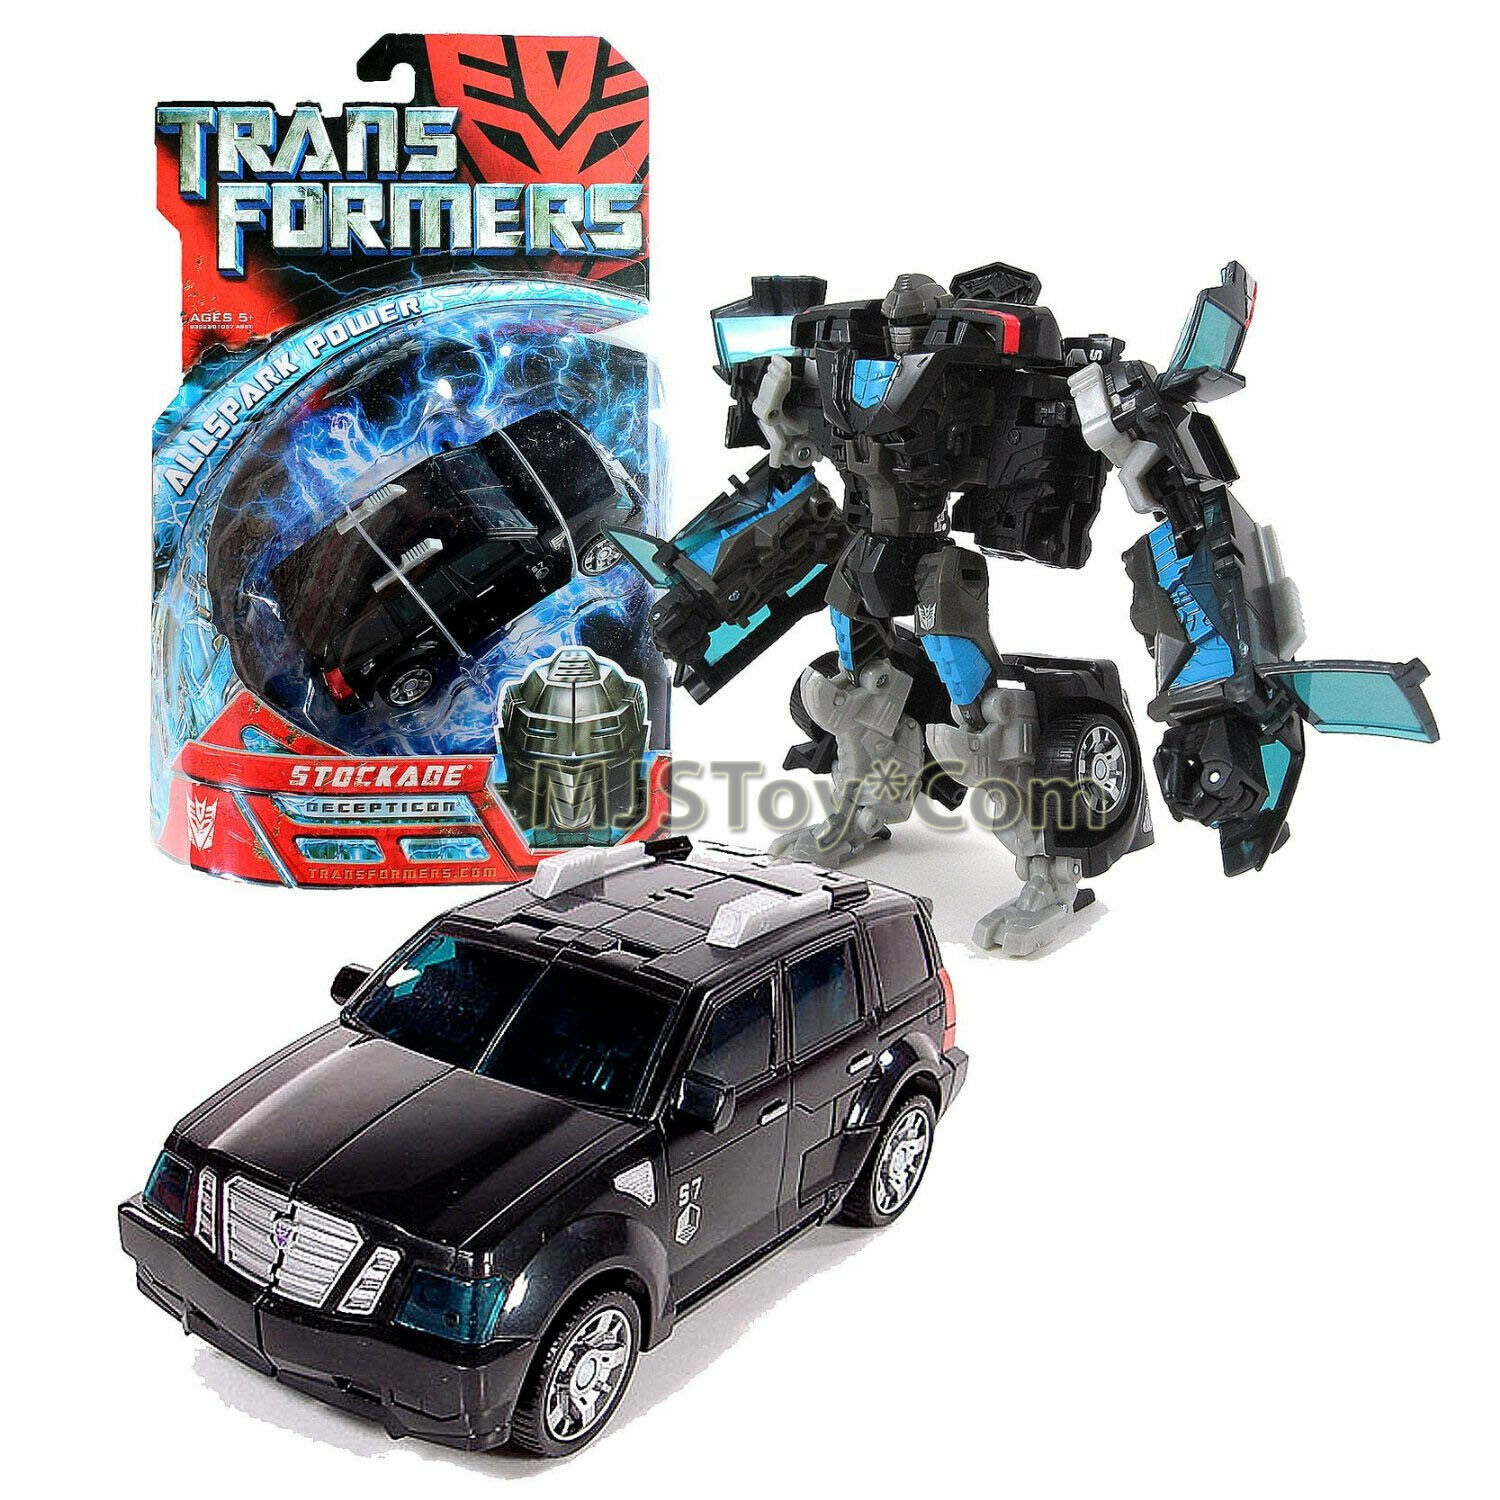 "Year 2007 Transformers 1st Movie All Spark Power Series Deluxe Class 6"" STOCKADE"